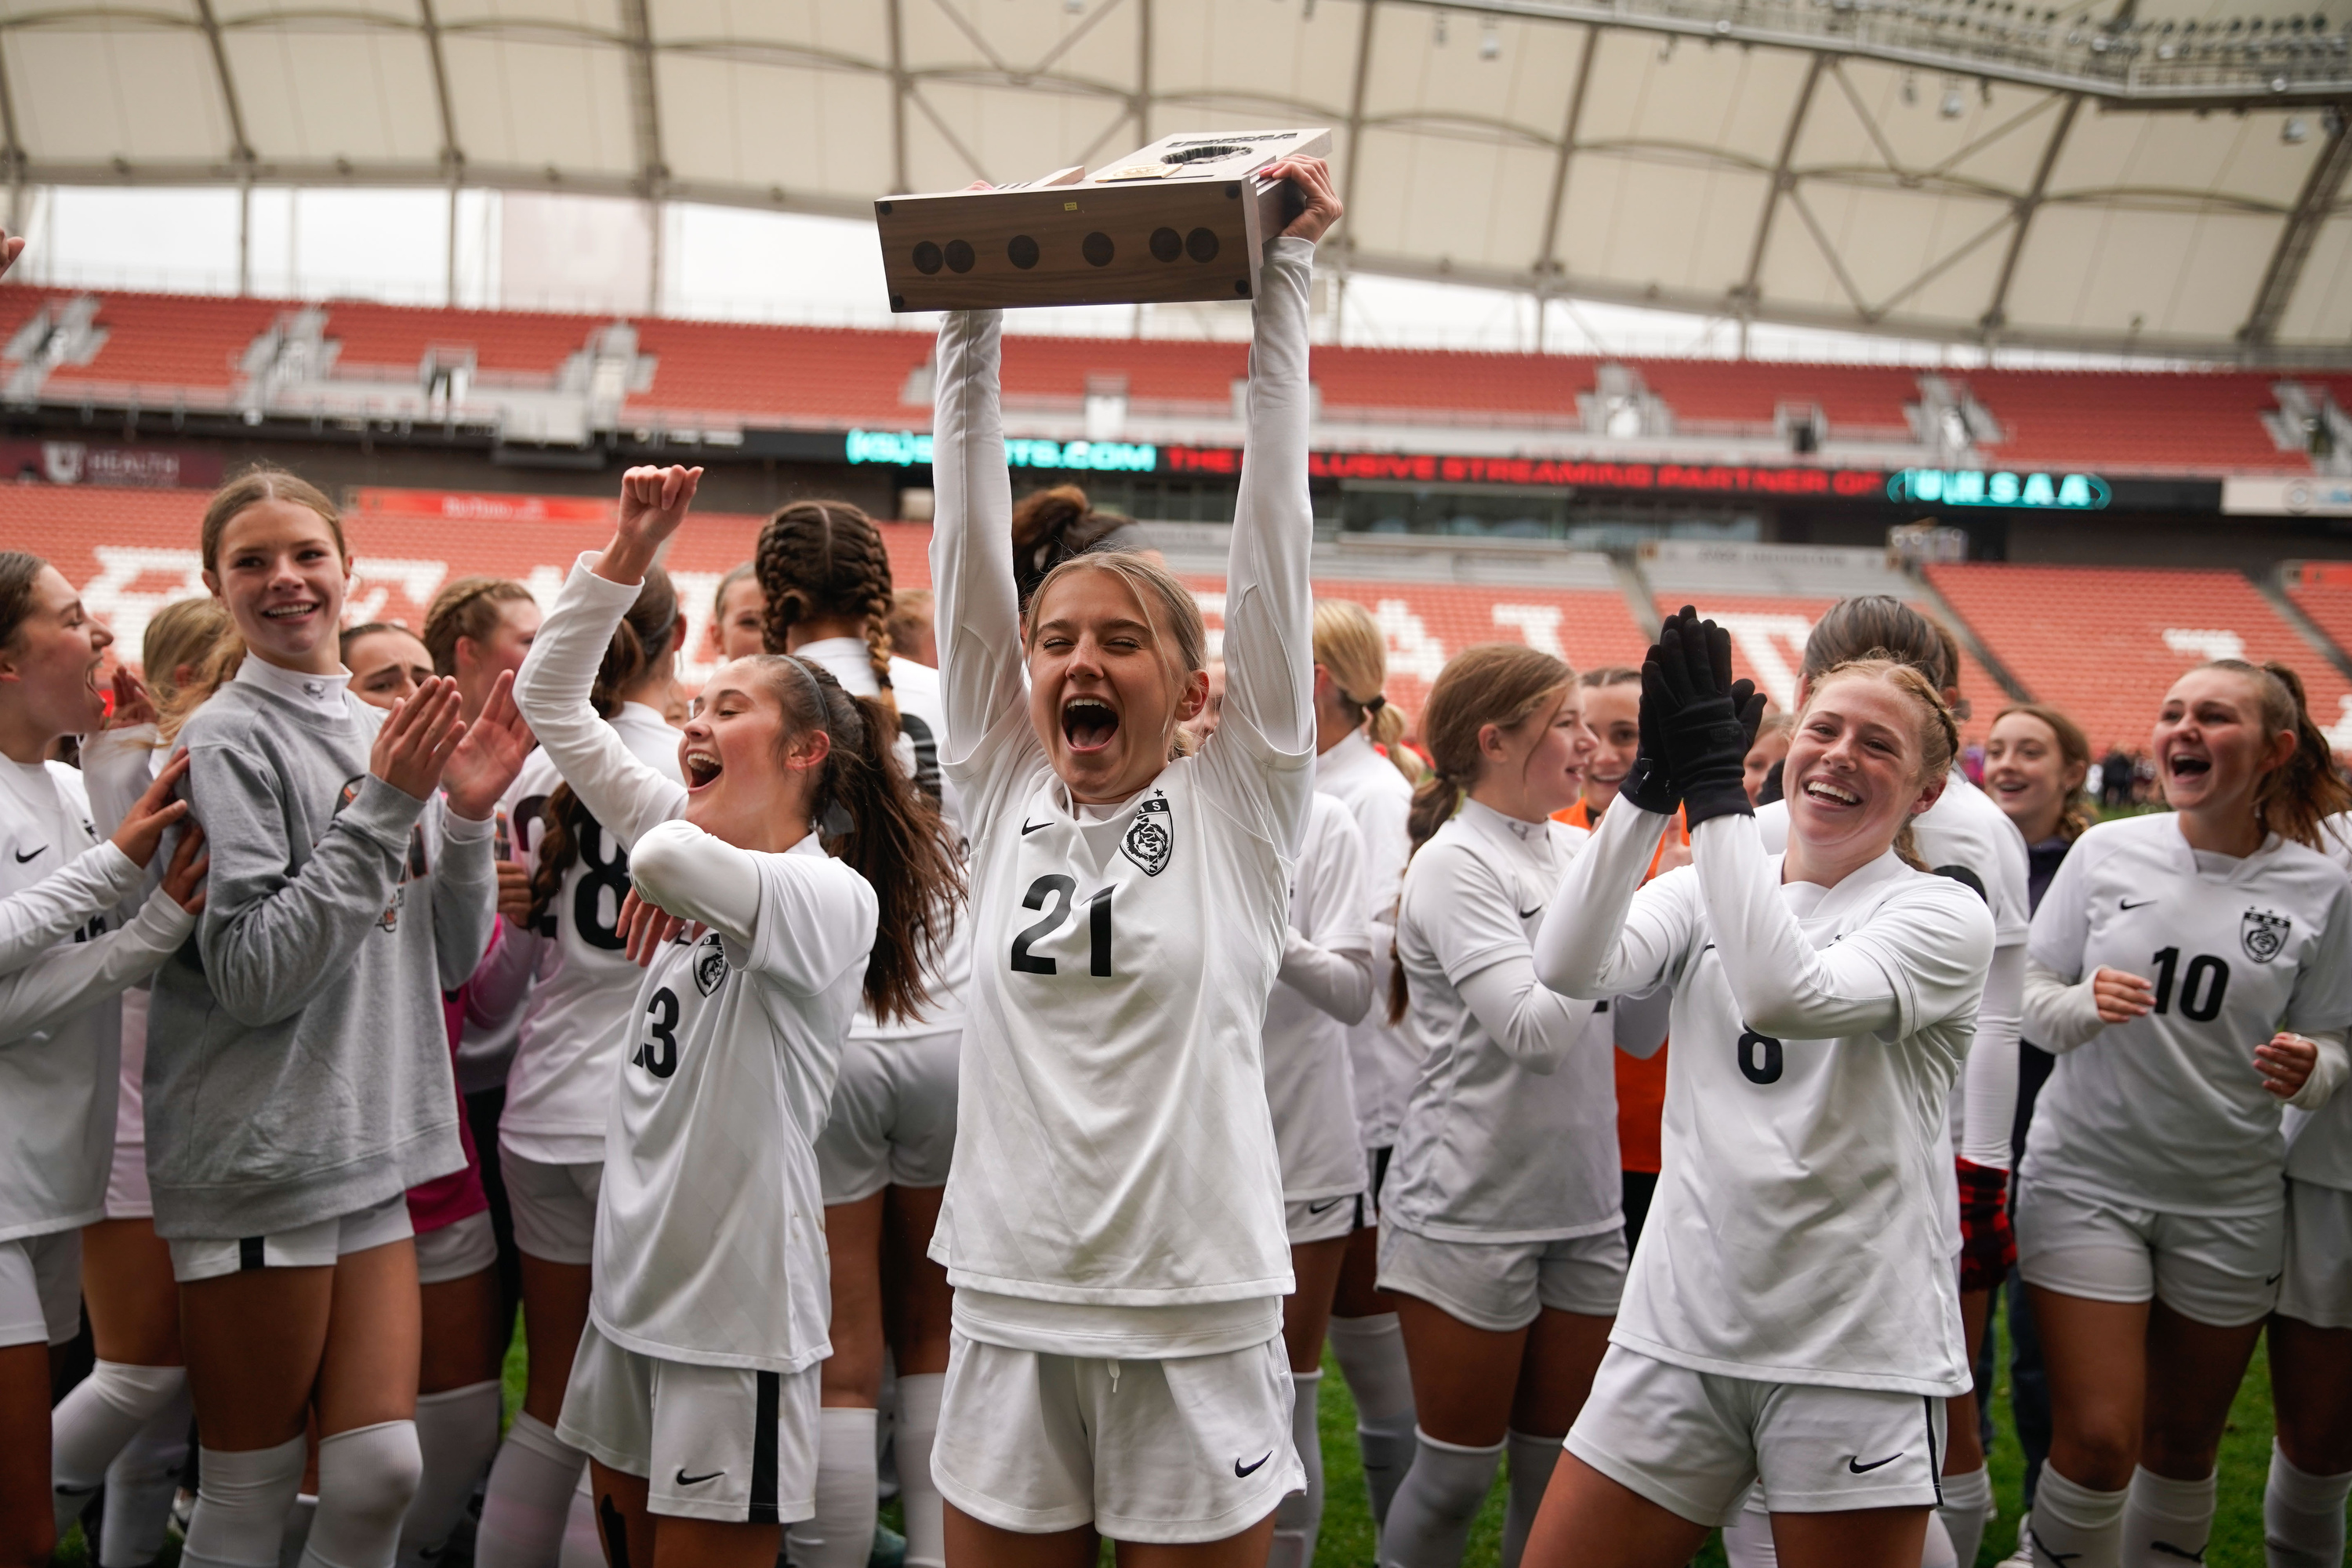 Ogden's Tess Bailey (21) and her teammates celebrate their win against Morgan High in the 3A girls soccer state championship game on Saturday, Oct. 23, 2021 at Rio Tinto Stadium in Sandy .